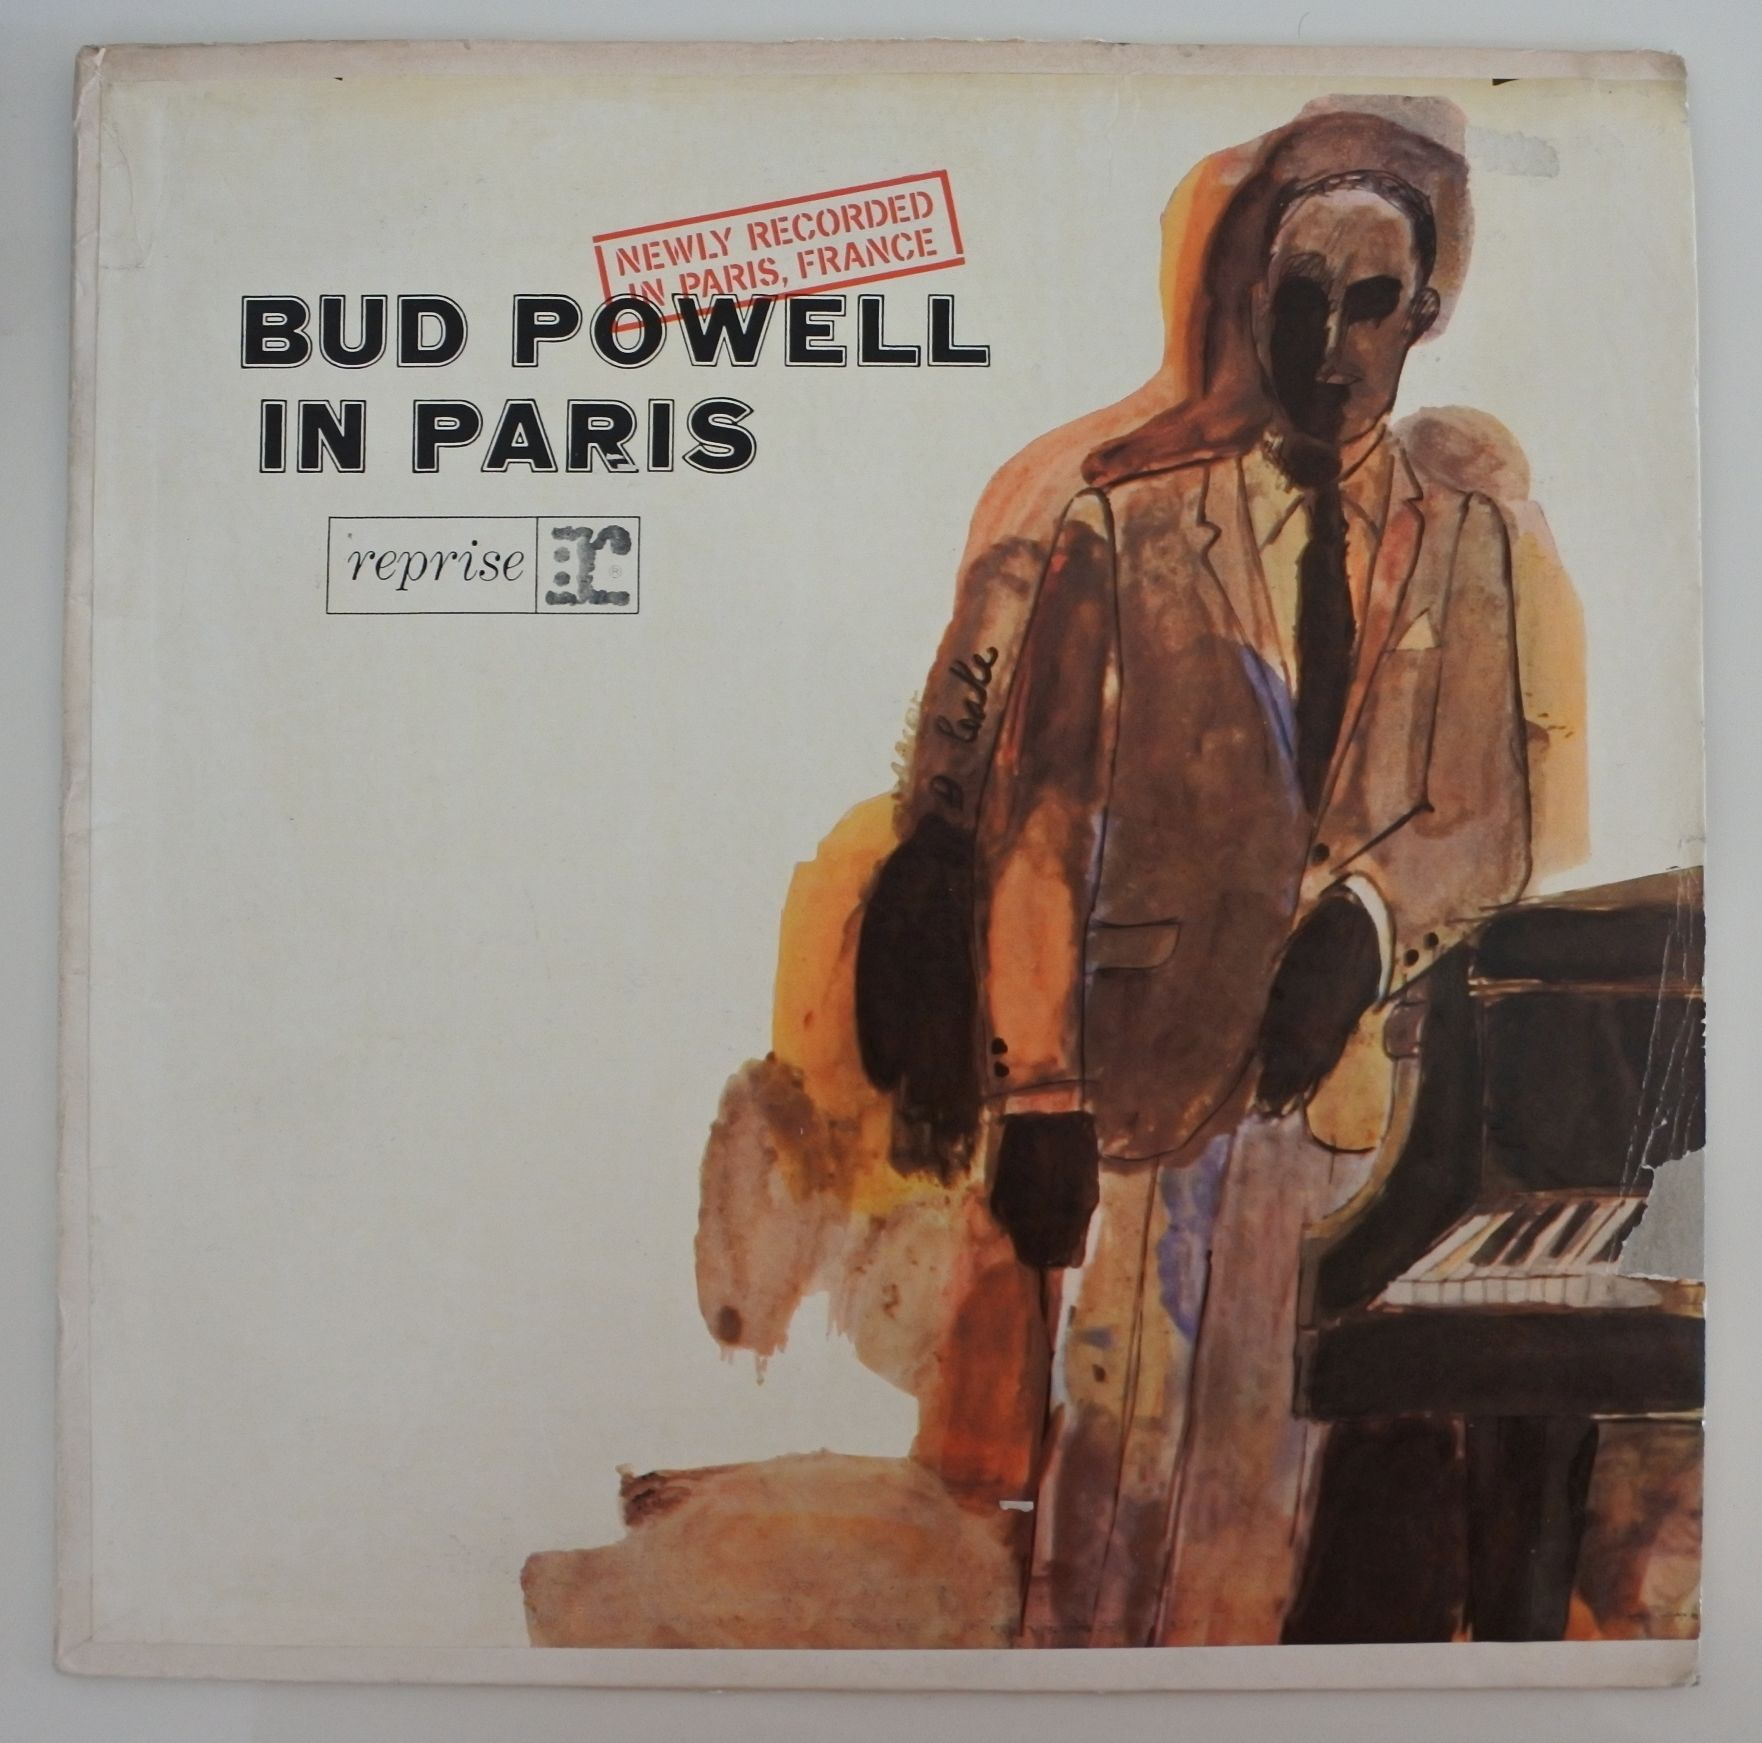 Bud Powell  ?- Bud Powell In Paris (Argentina  Reprise 12-473) mono